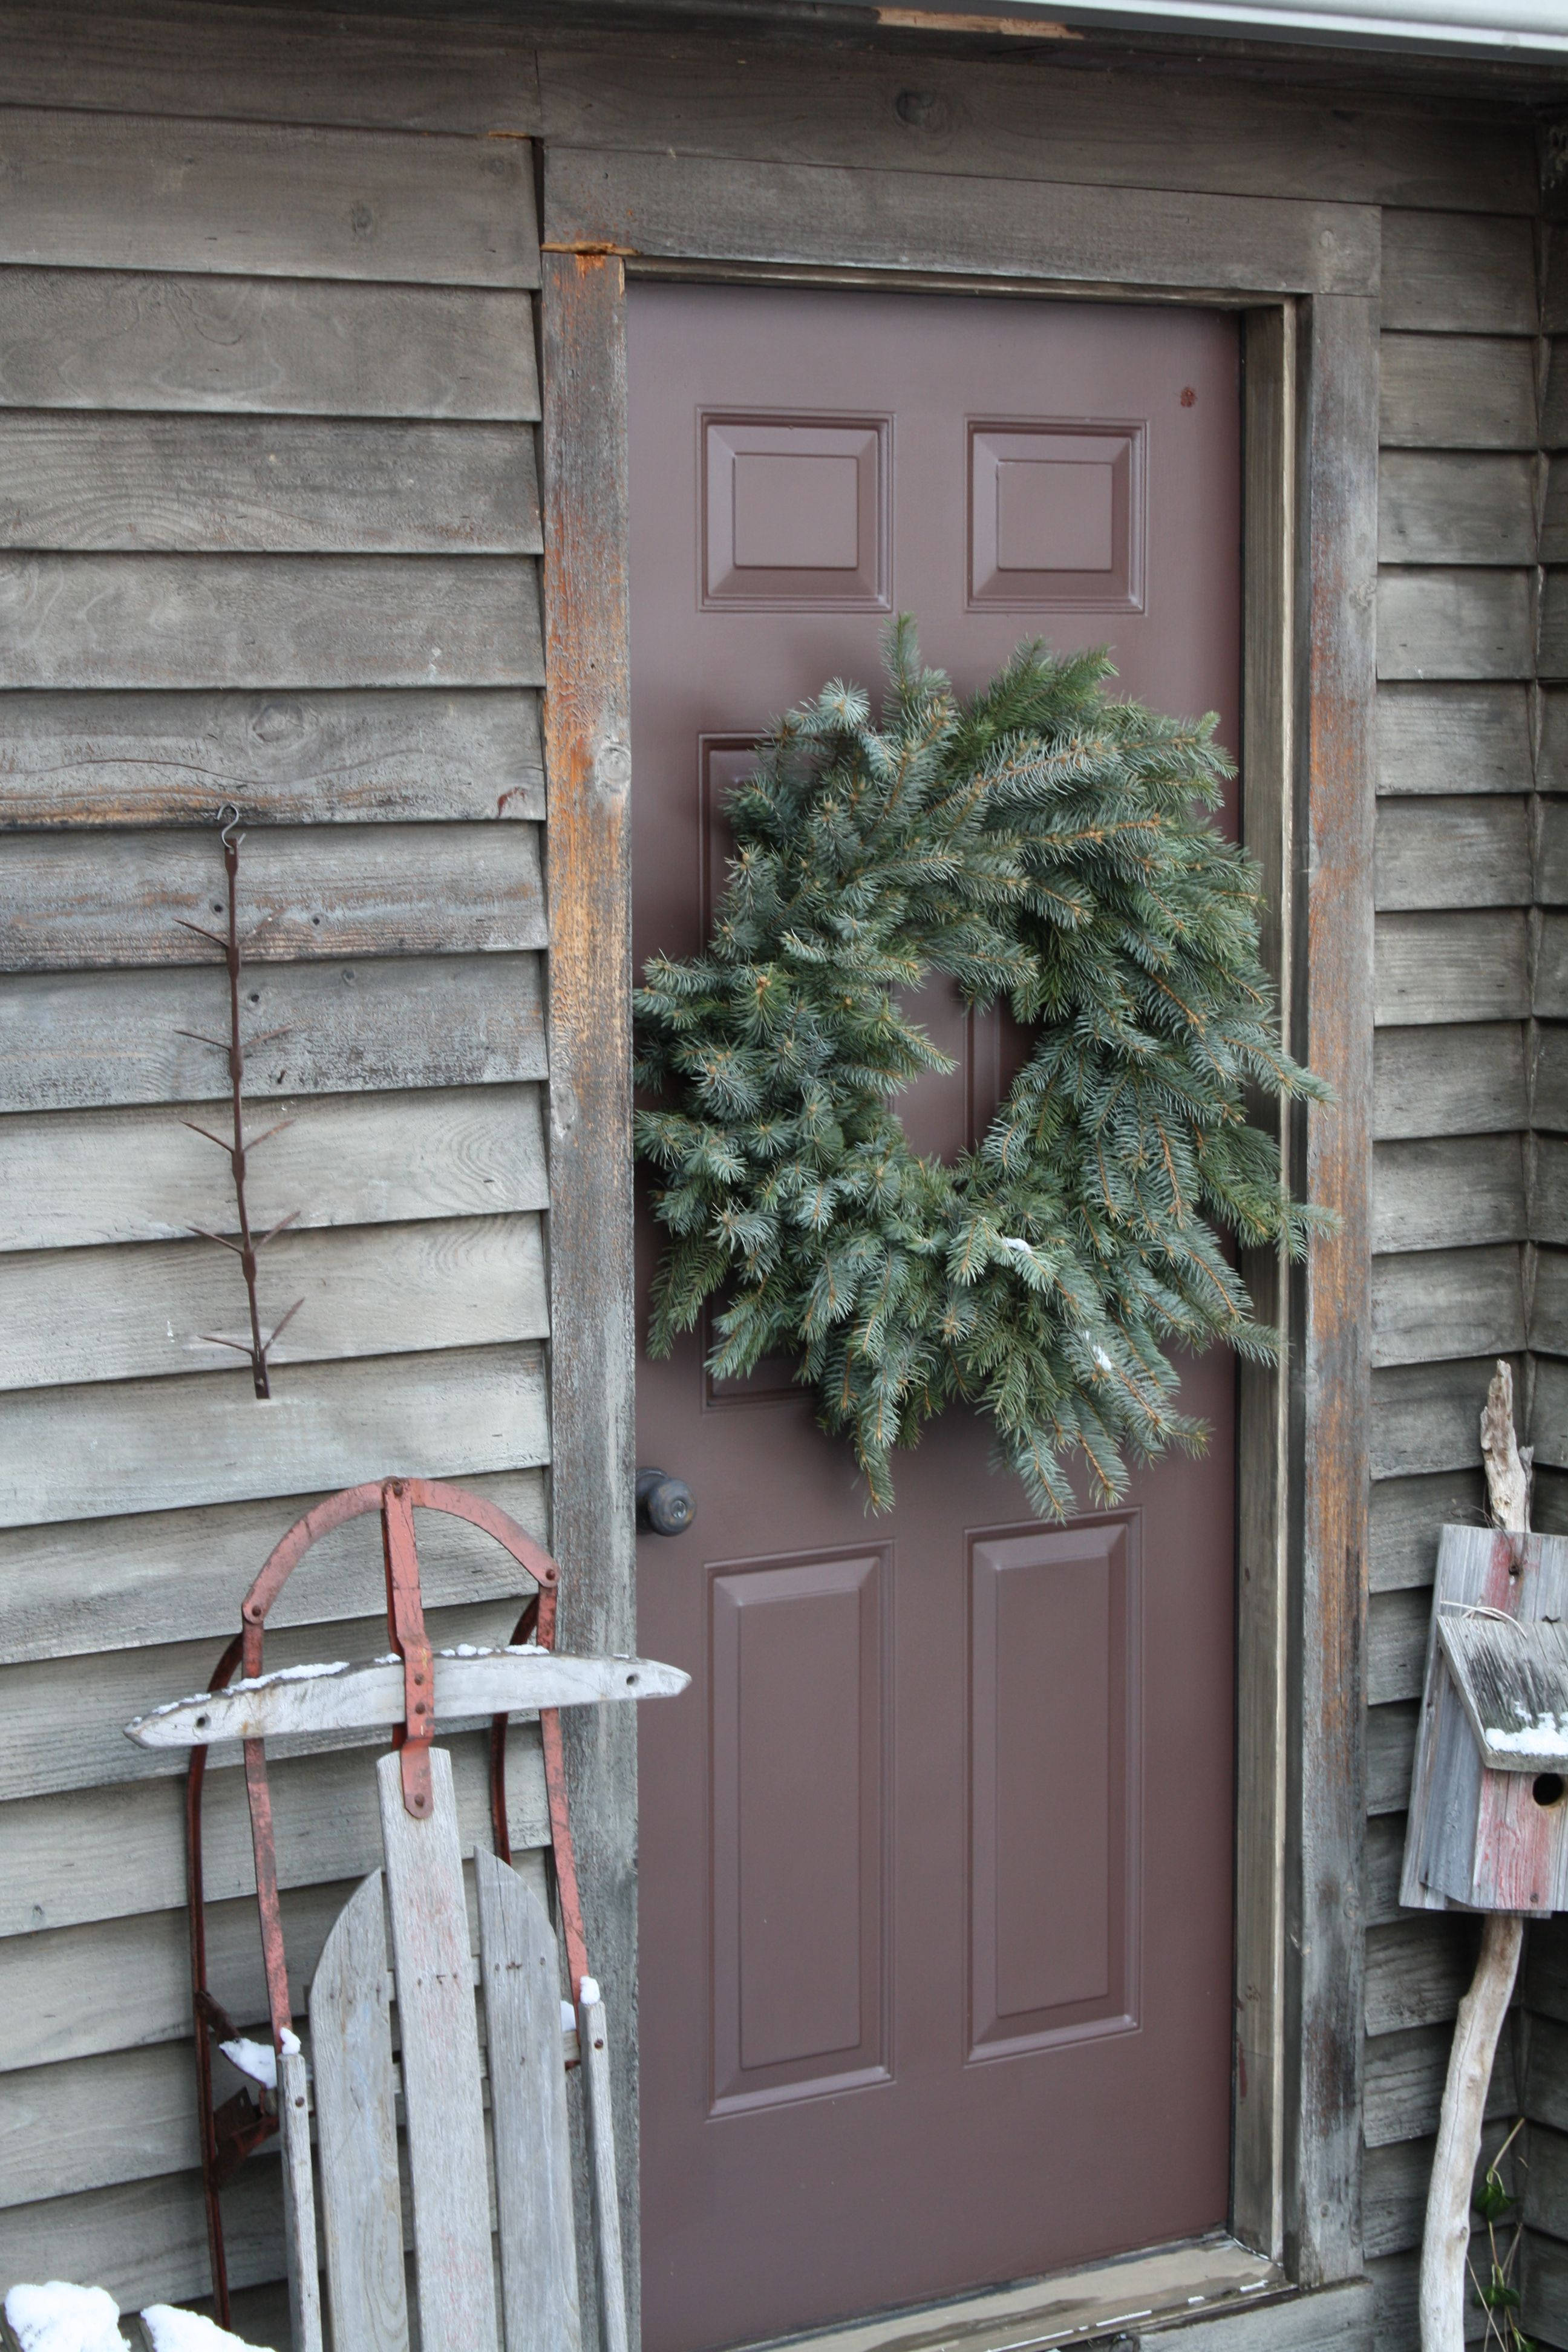 Window well decoration ideas  pin by diana azzato on log cabin christmas  pinterest  christmas